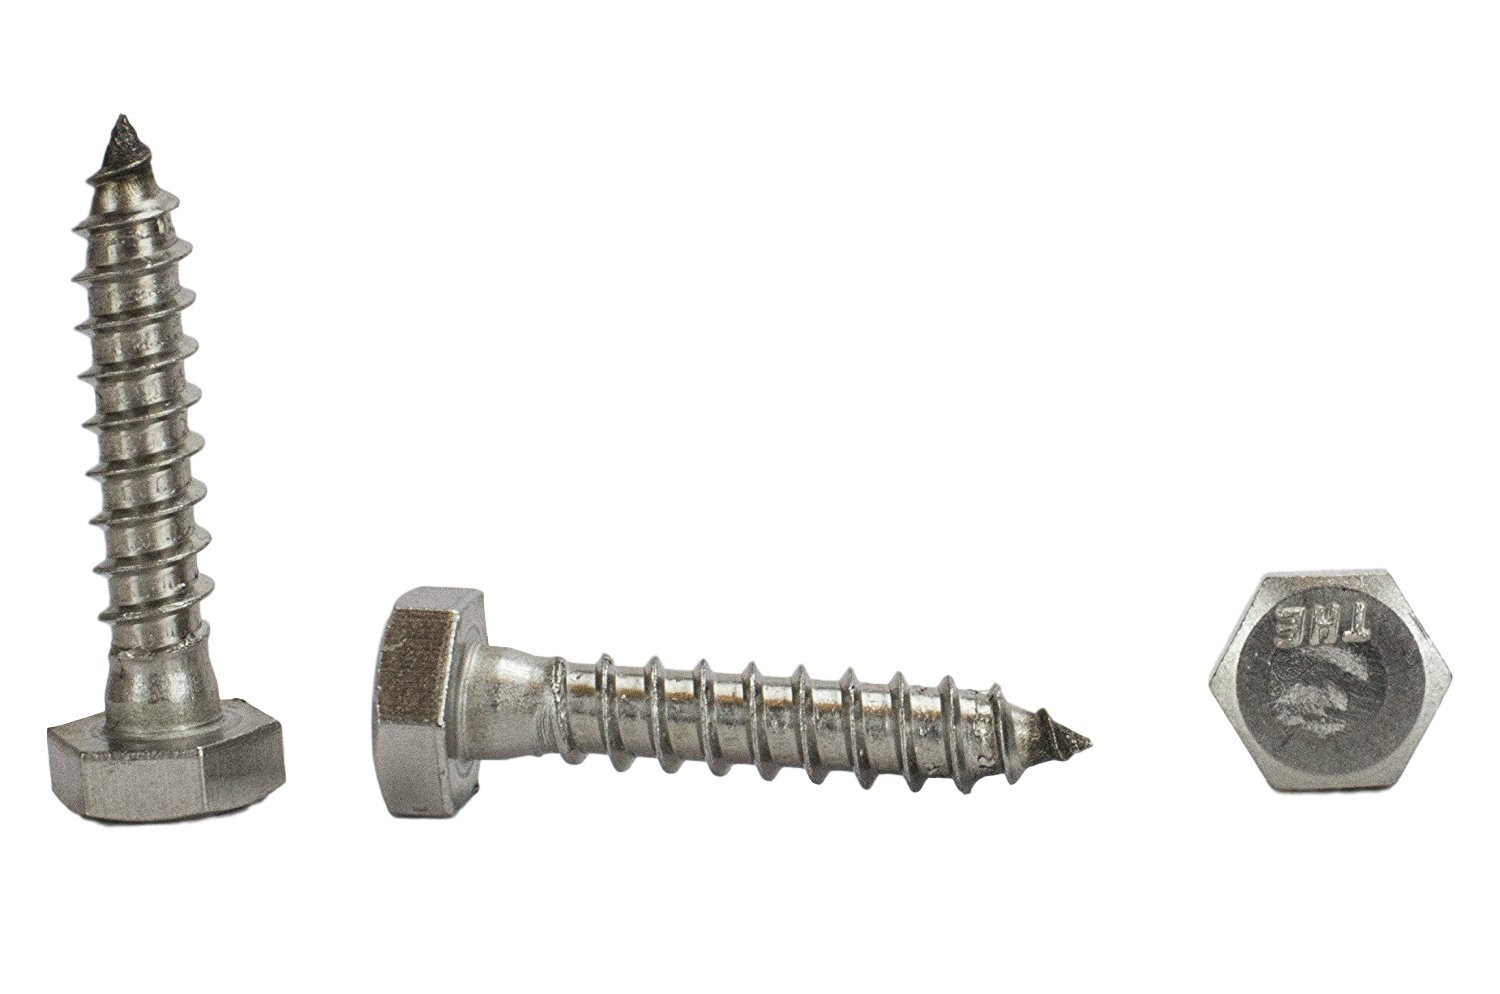 Stainless 1/4 x 1-1/4'' Hex Lag Screw (1'' To 5'' Lengths Available in Listing), 18-8 Stainless Steel, 50 pieces (1/4 x 1-1/4'')